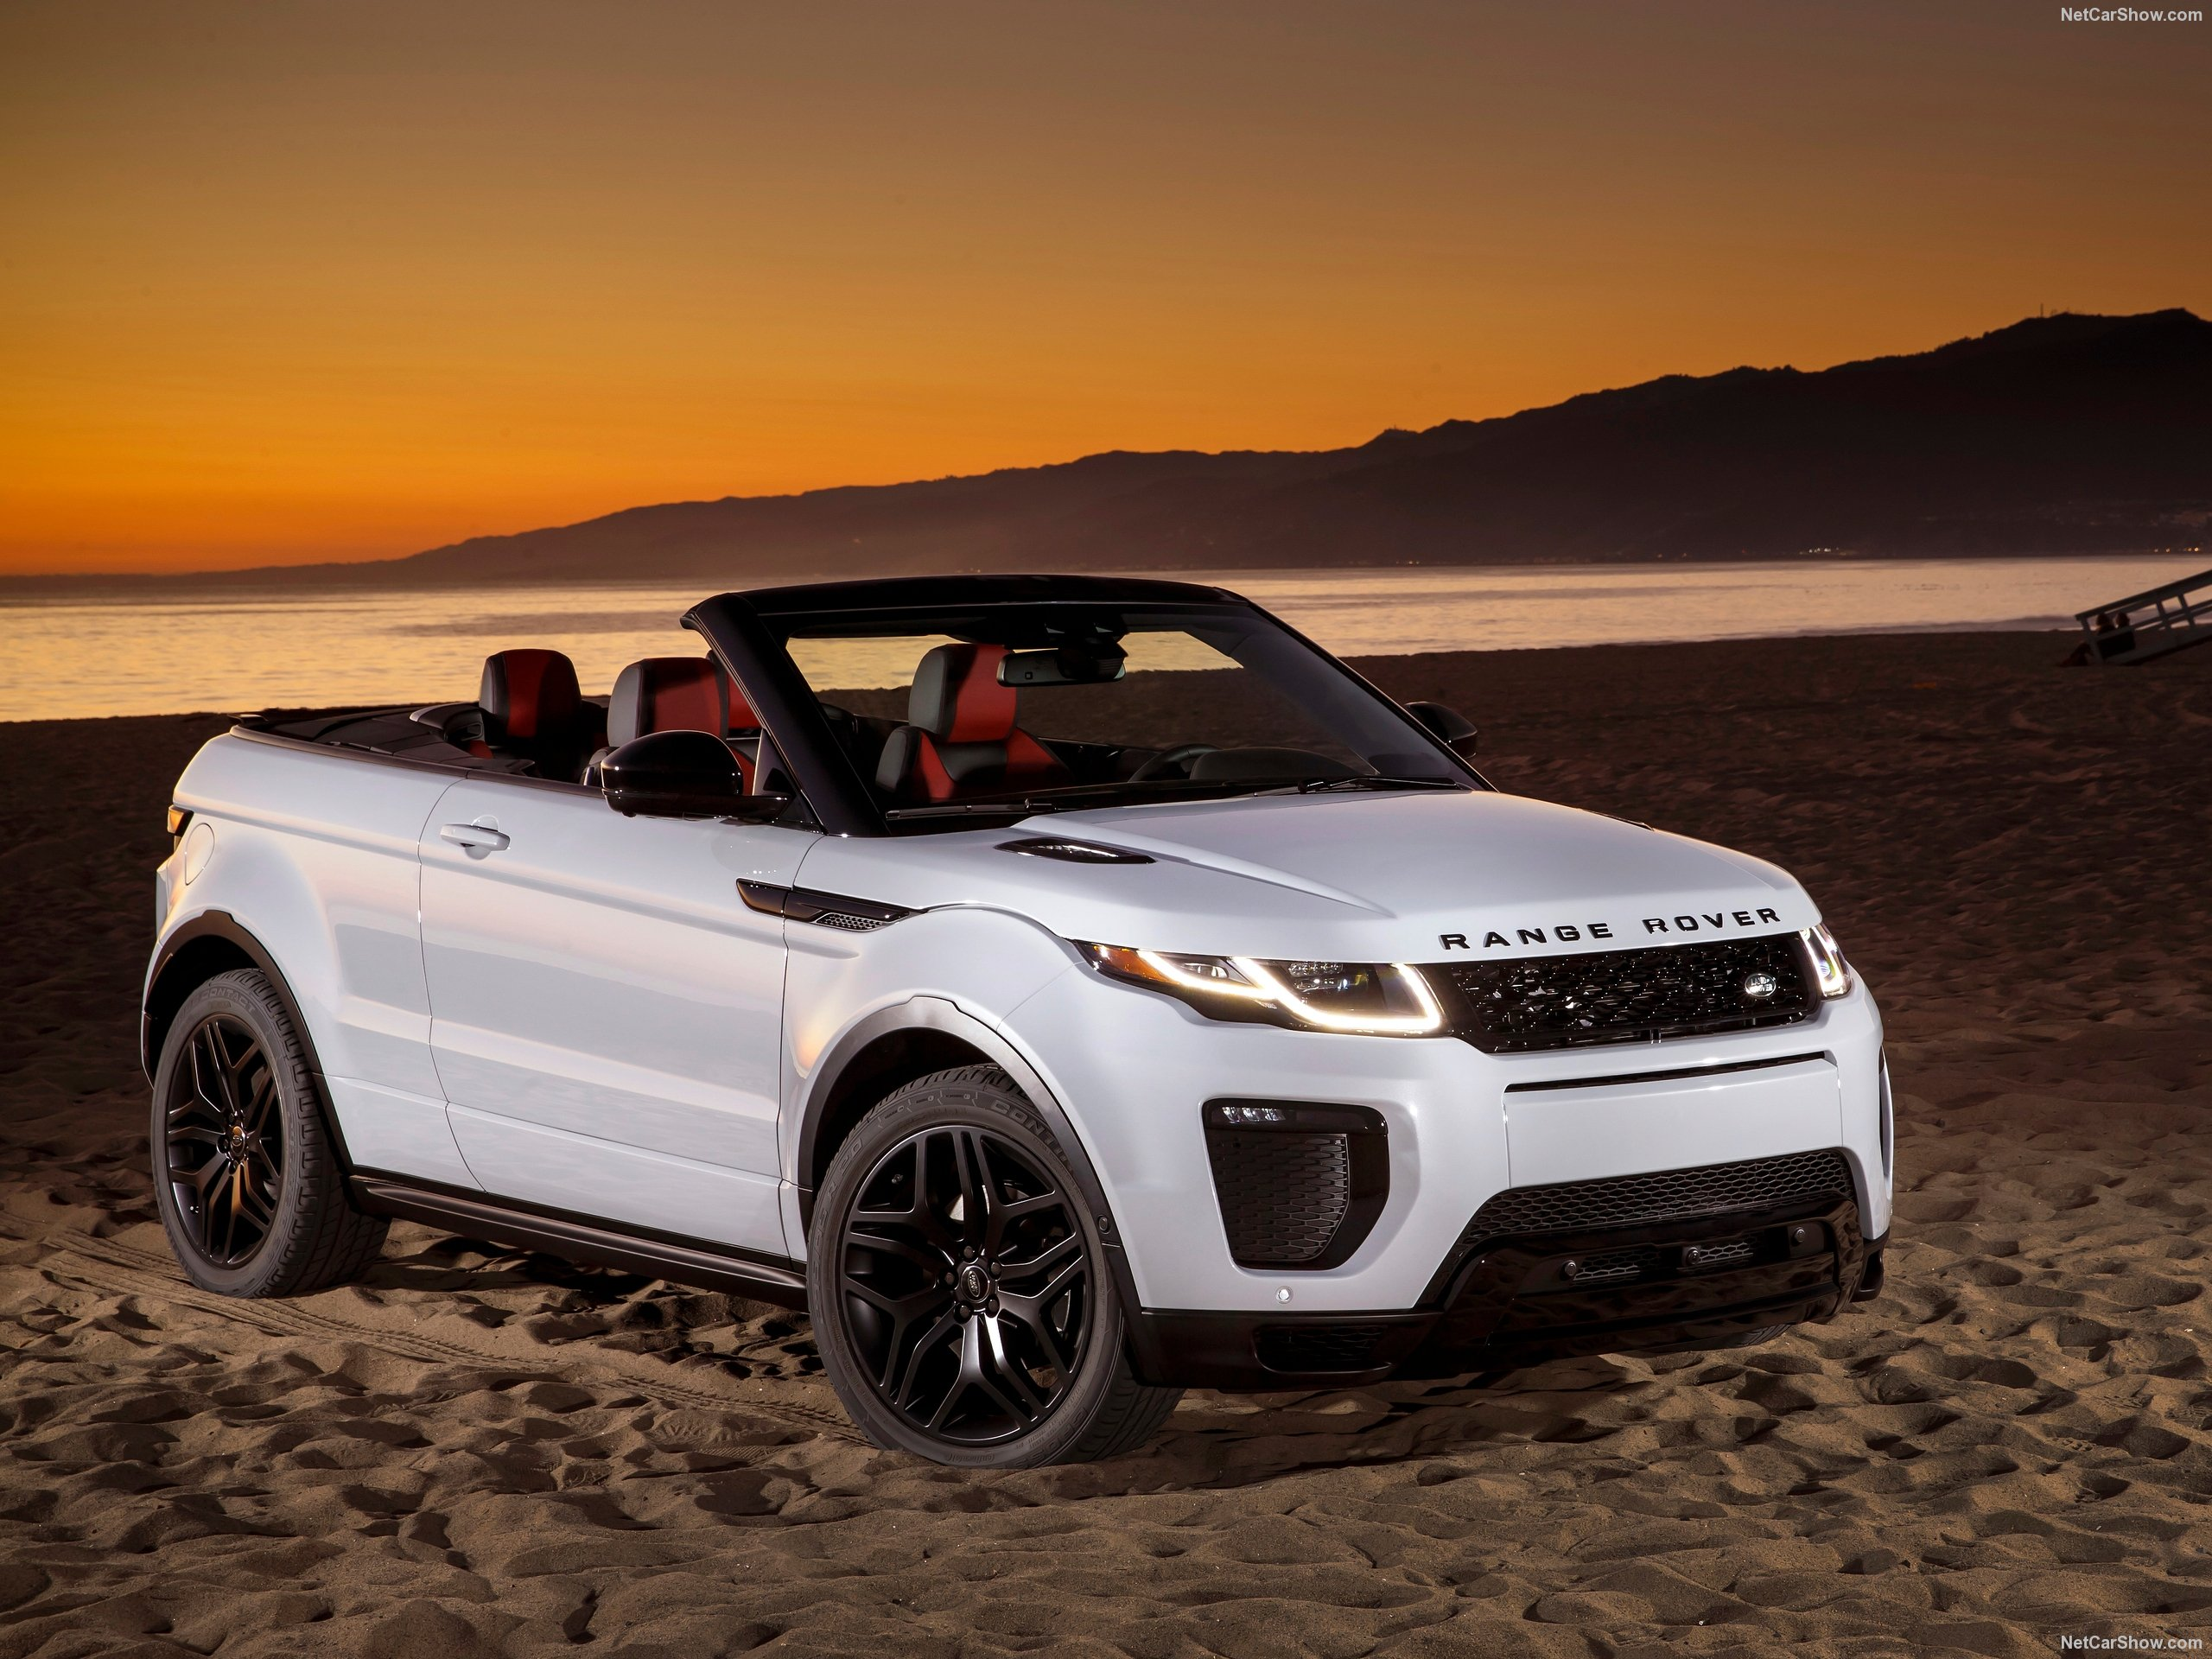 2017 range rover evoque convertible by thexrealxbanks on. Black Bedroom Furniture Sets. Home Design Ideas